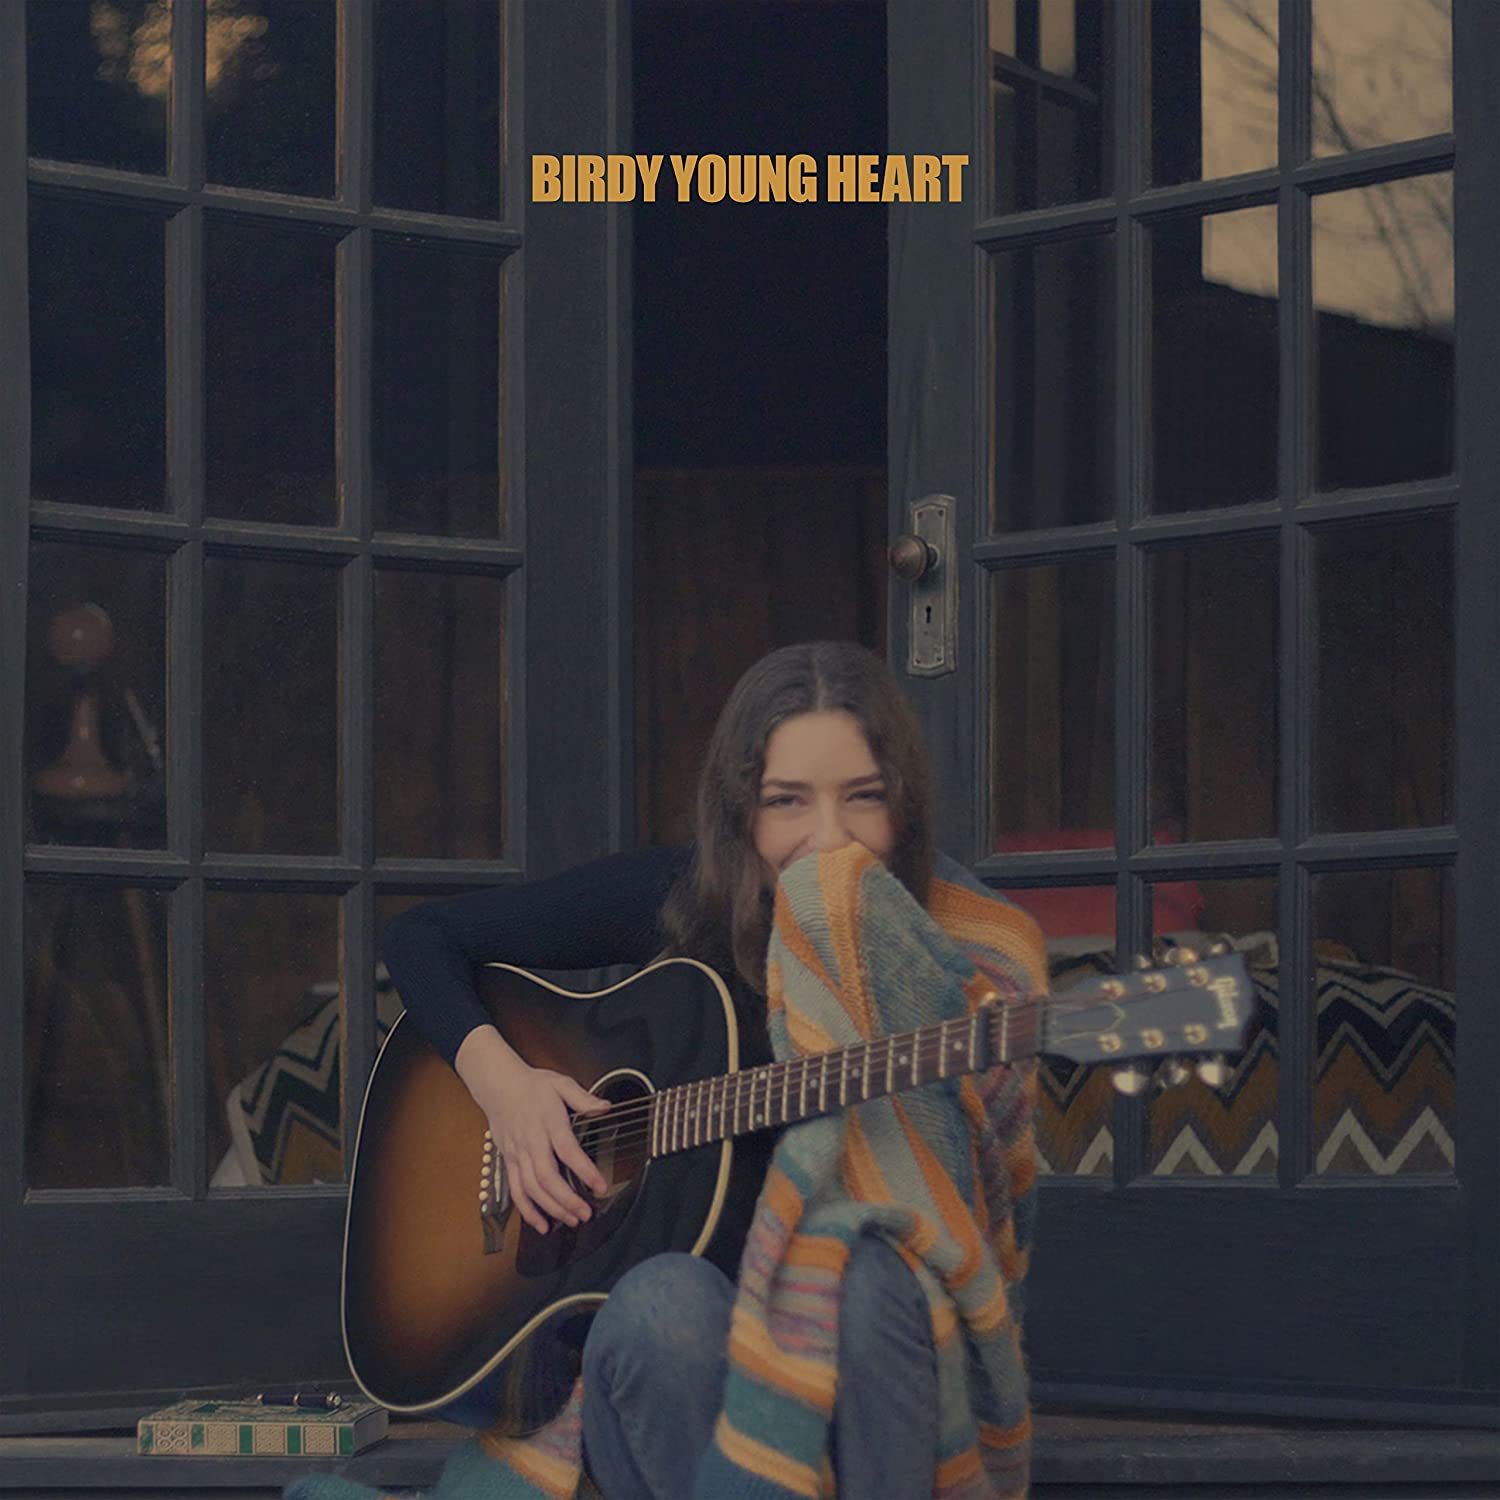 Birdy Young Heart album review